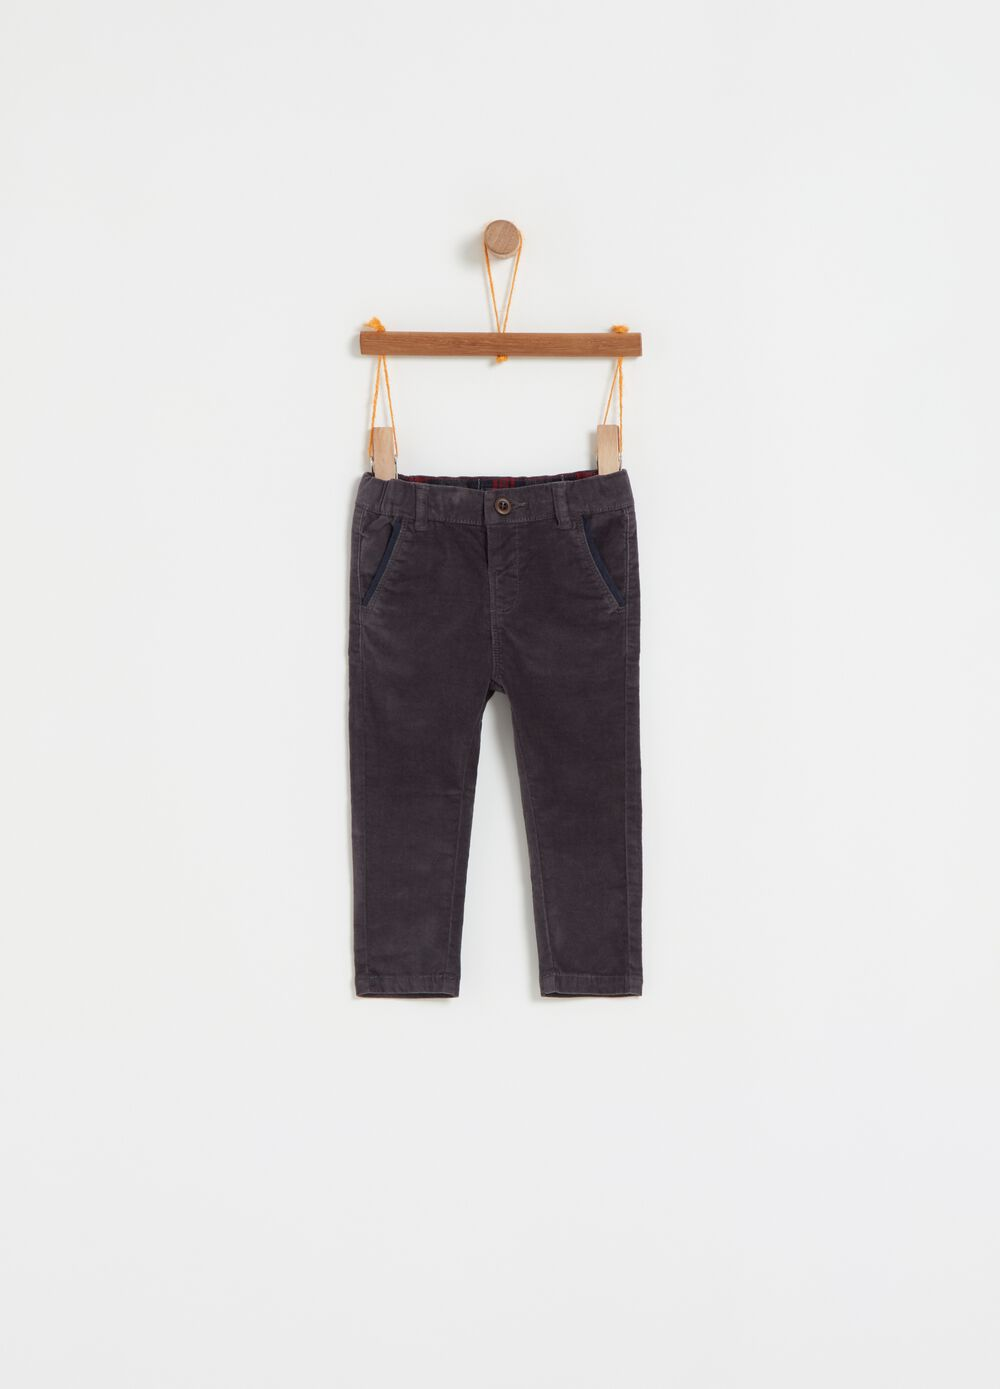 Stretch flannelette trousers with pockets